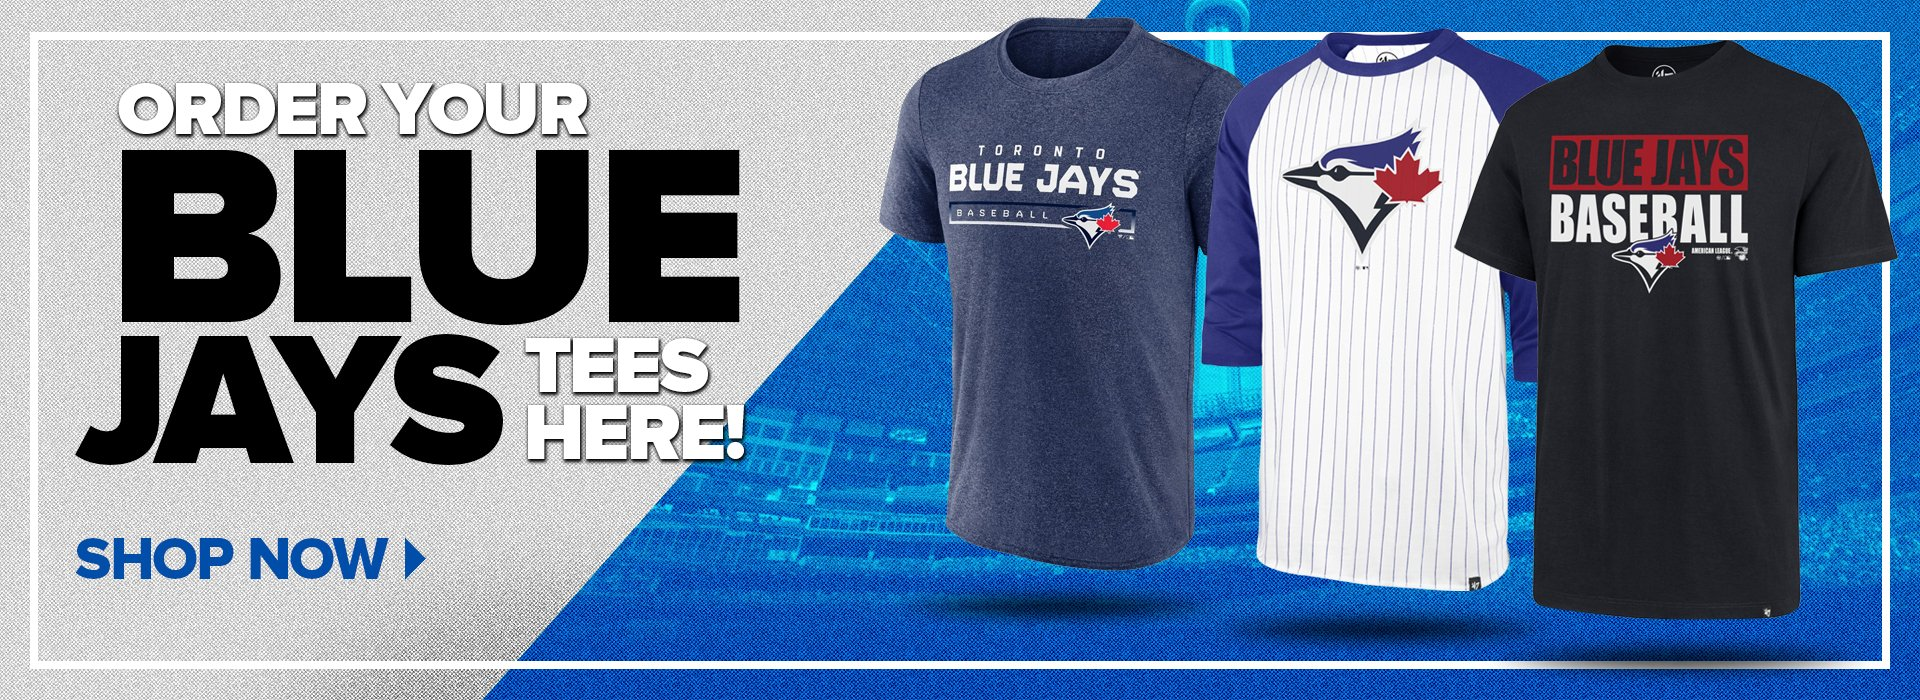 KANSAS CITY CHIEFS SUPER BOWL LIV CHAMPS GEAR!